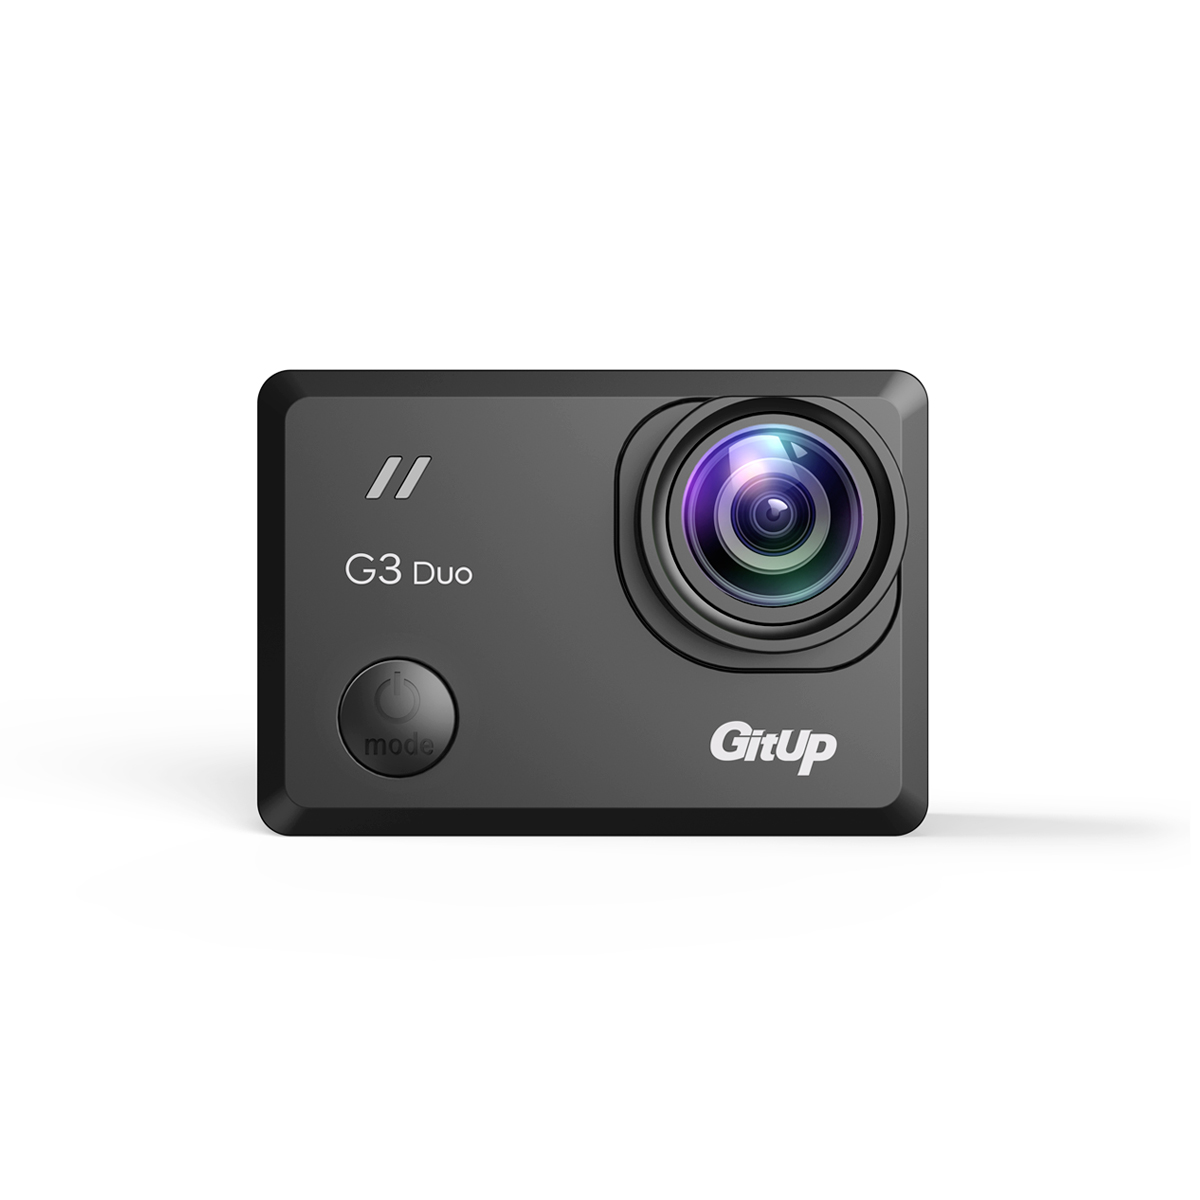 2018 New Gitup G3 Duo 2K 12MP 2160P Sport Action Camera 2.0 Touch LCD Screen Gyro 170 Degree Portable Cam Optional GPS Slave